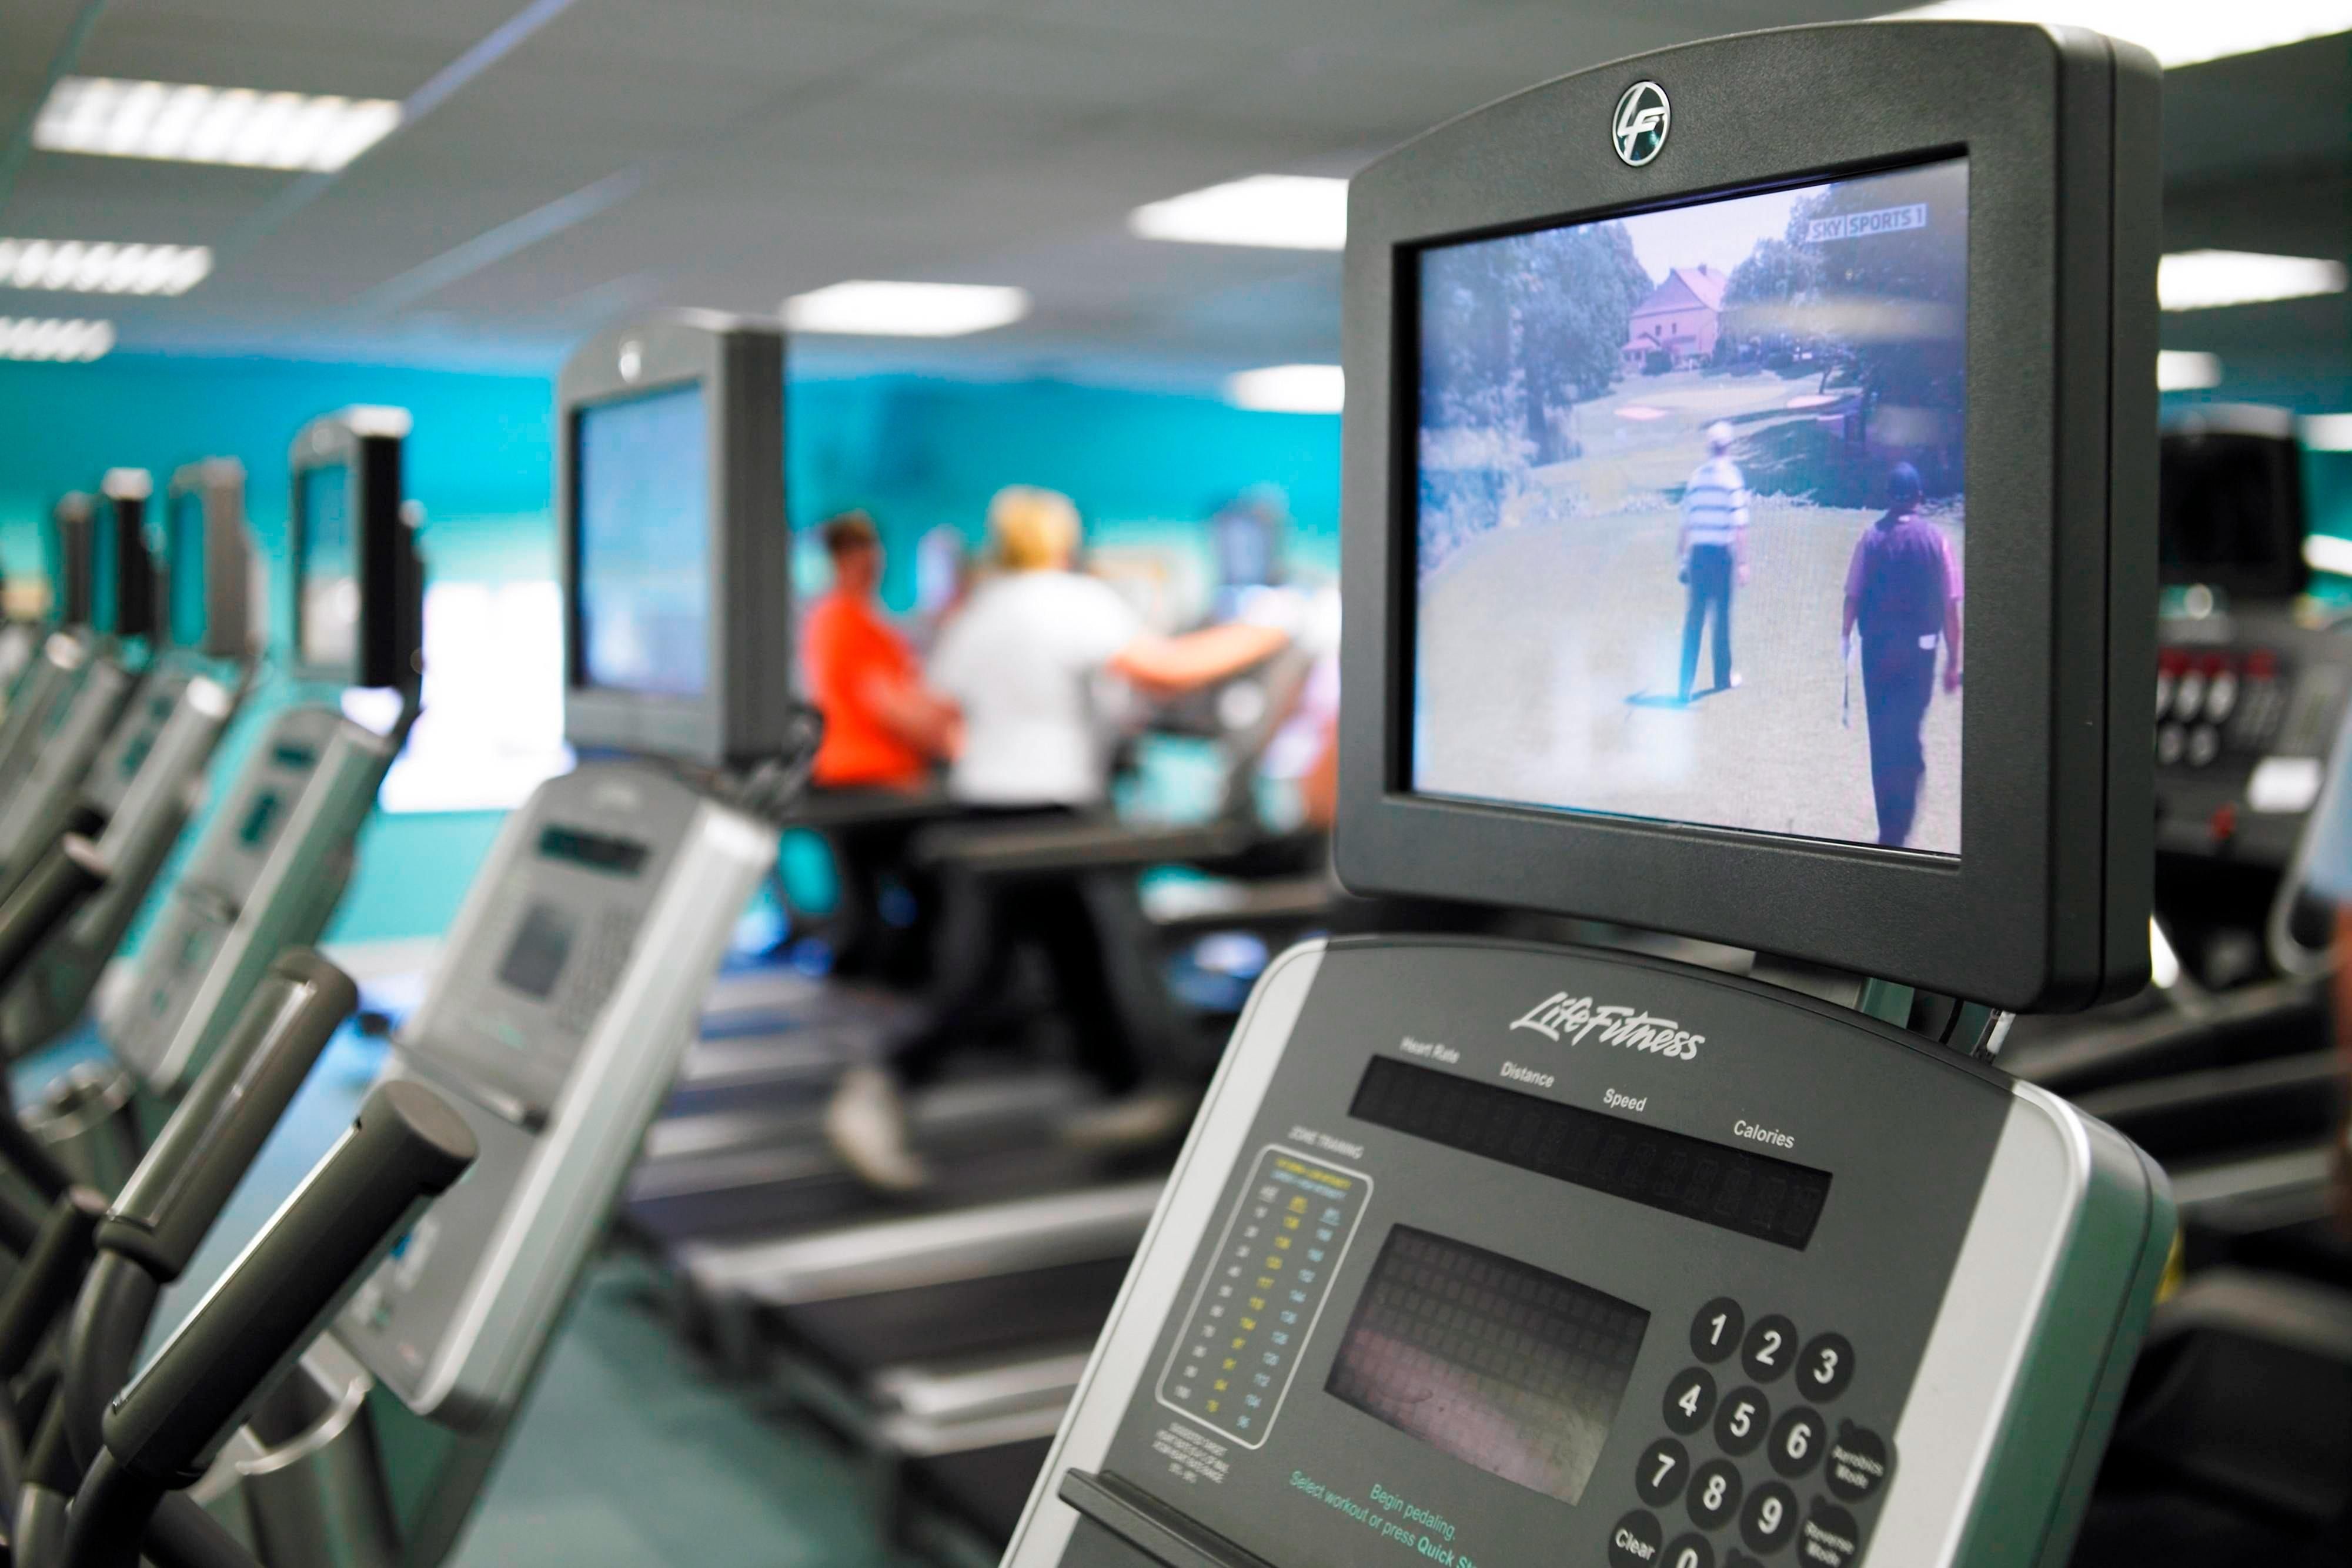 London Hotel with Fitness Equipment